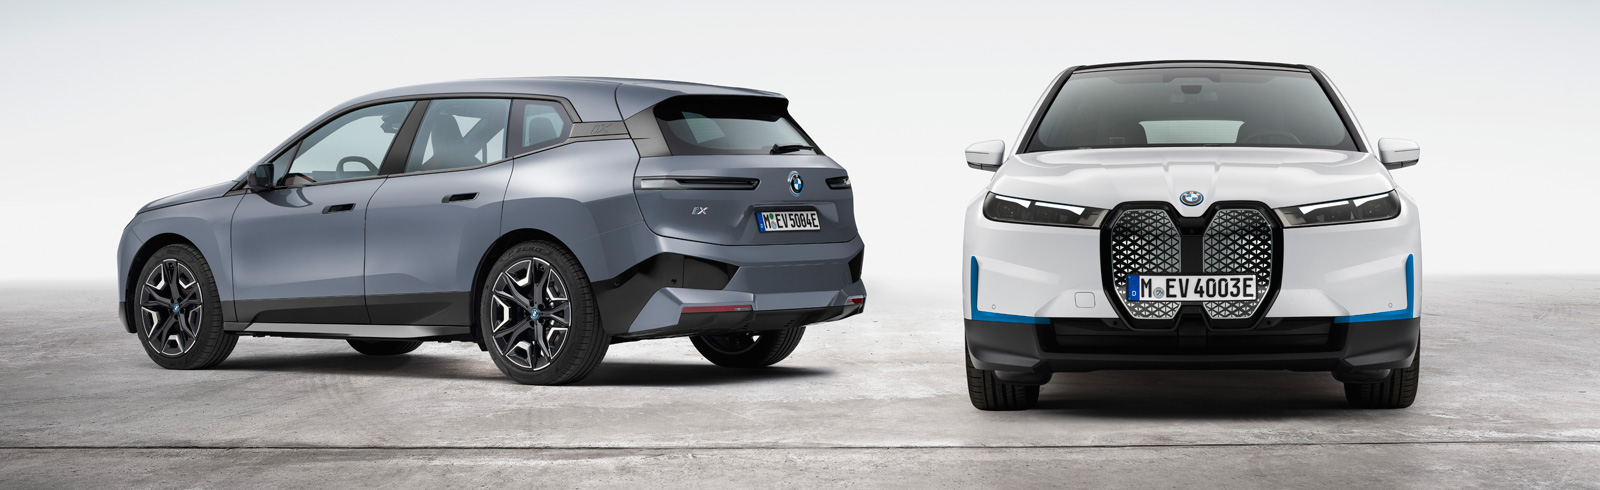 BMW iX xDrive50 and BMW iX xDrive40 are launched